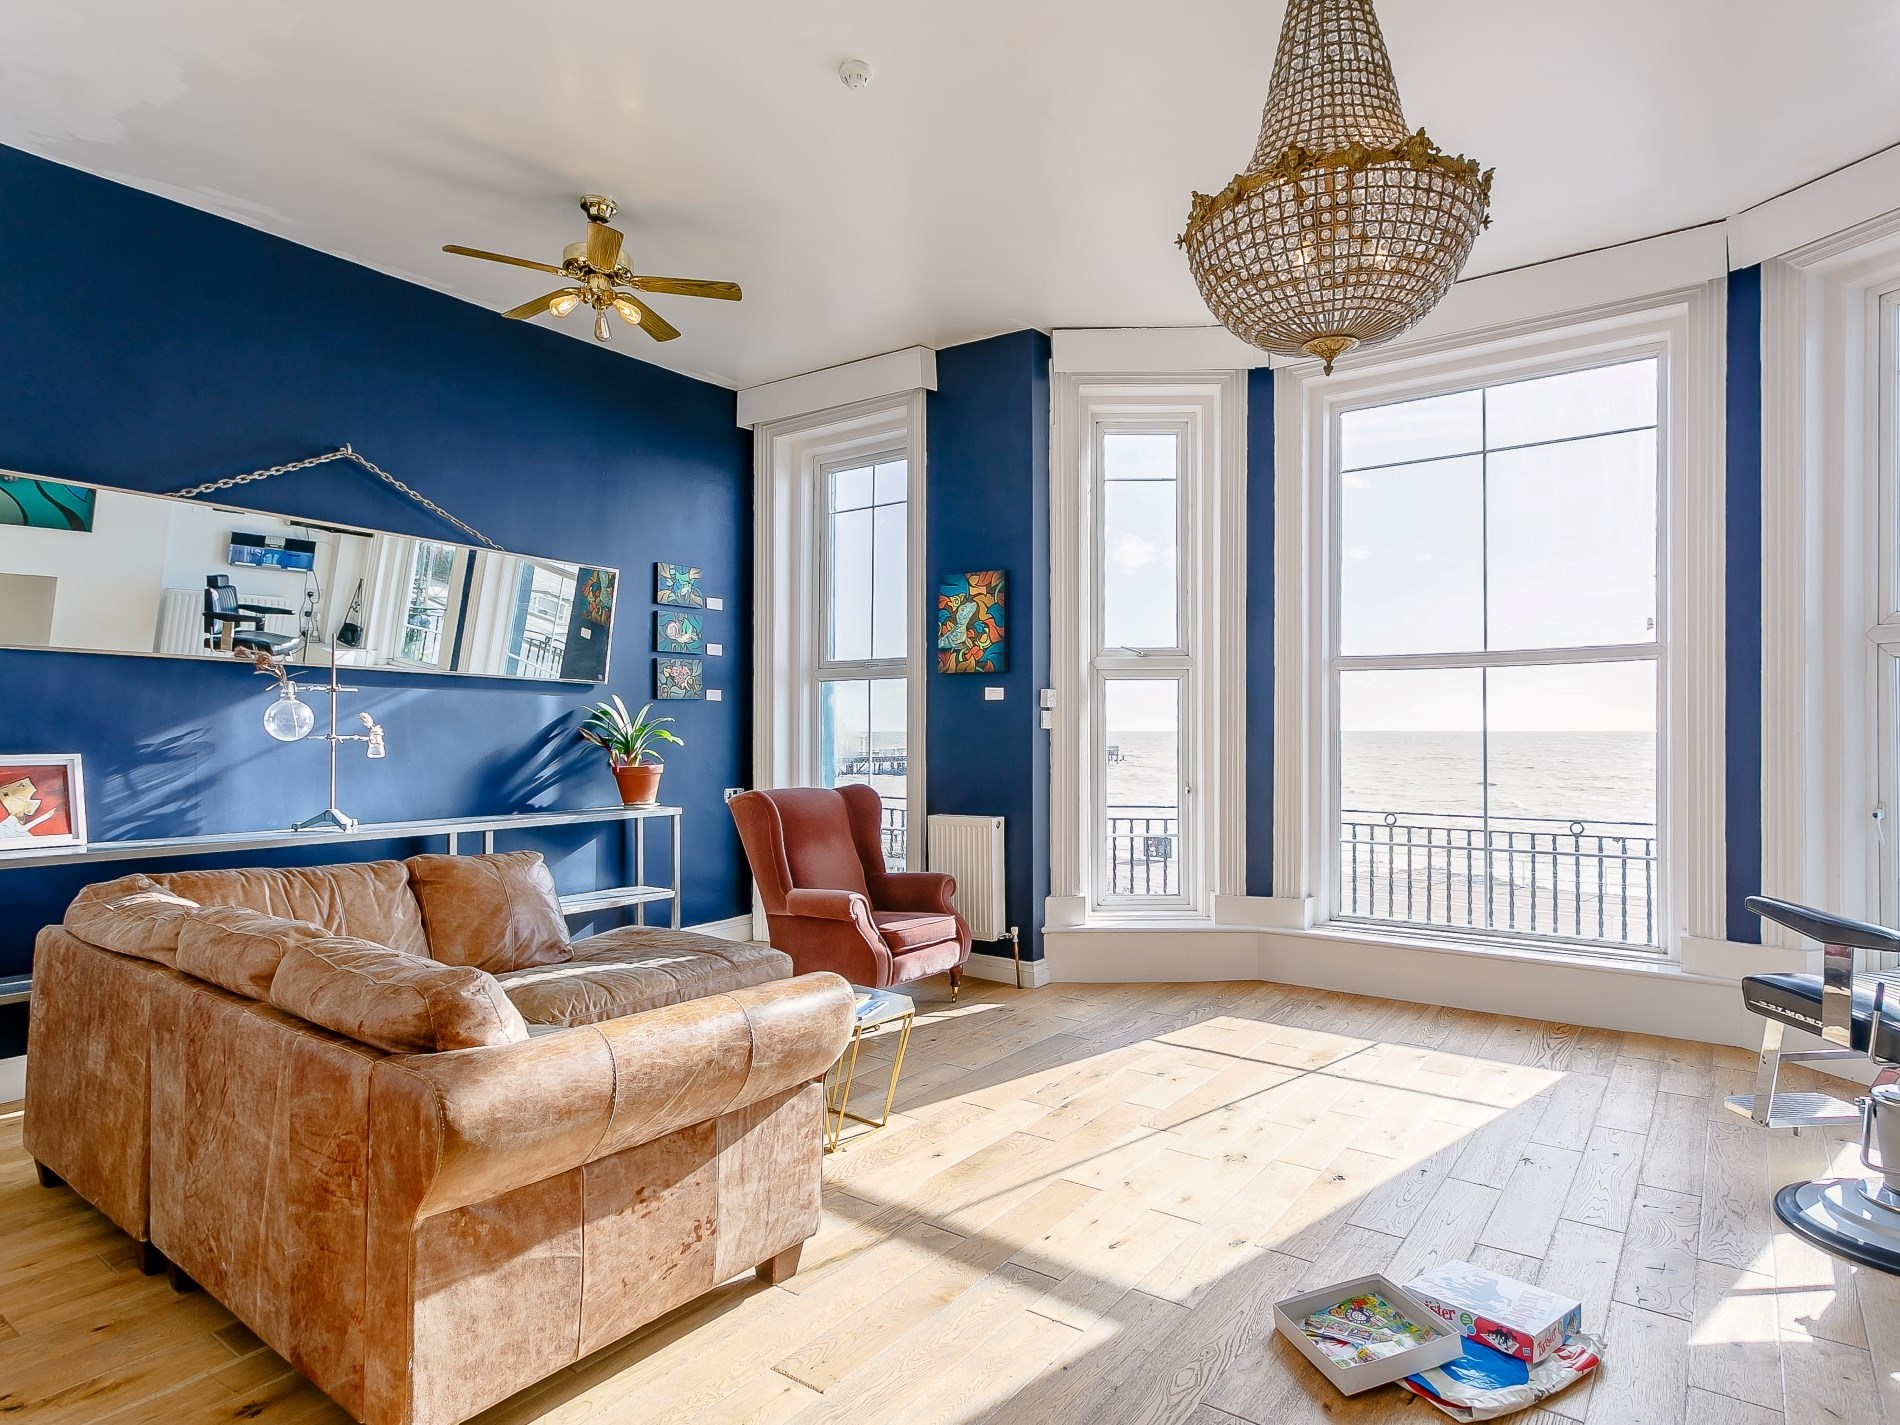 6 Bedroom Cottage in St. Leonards-on-sea, South of England